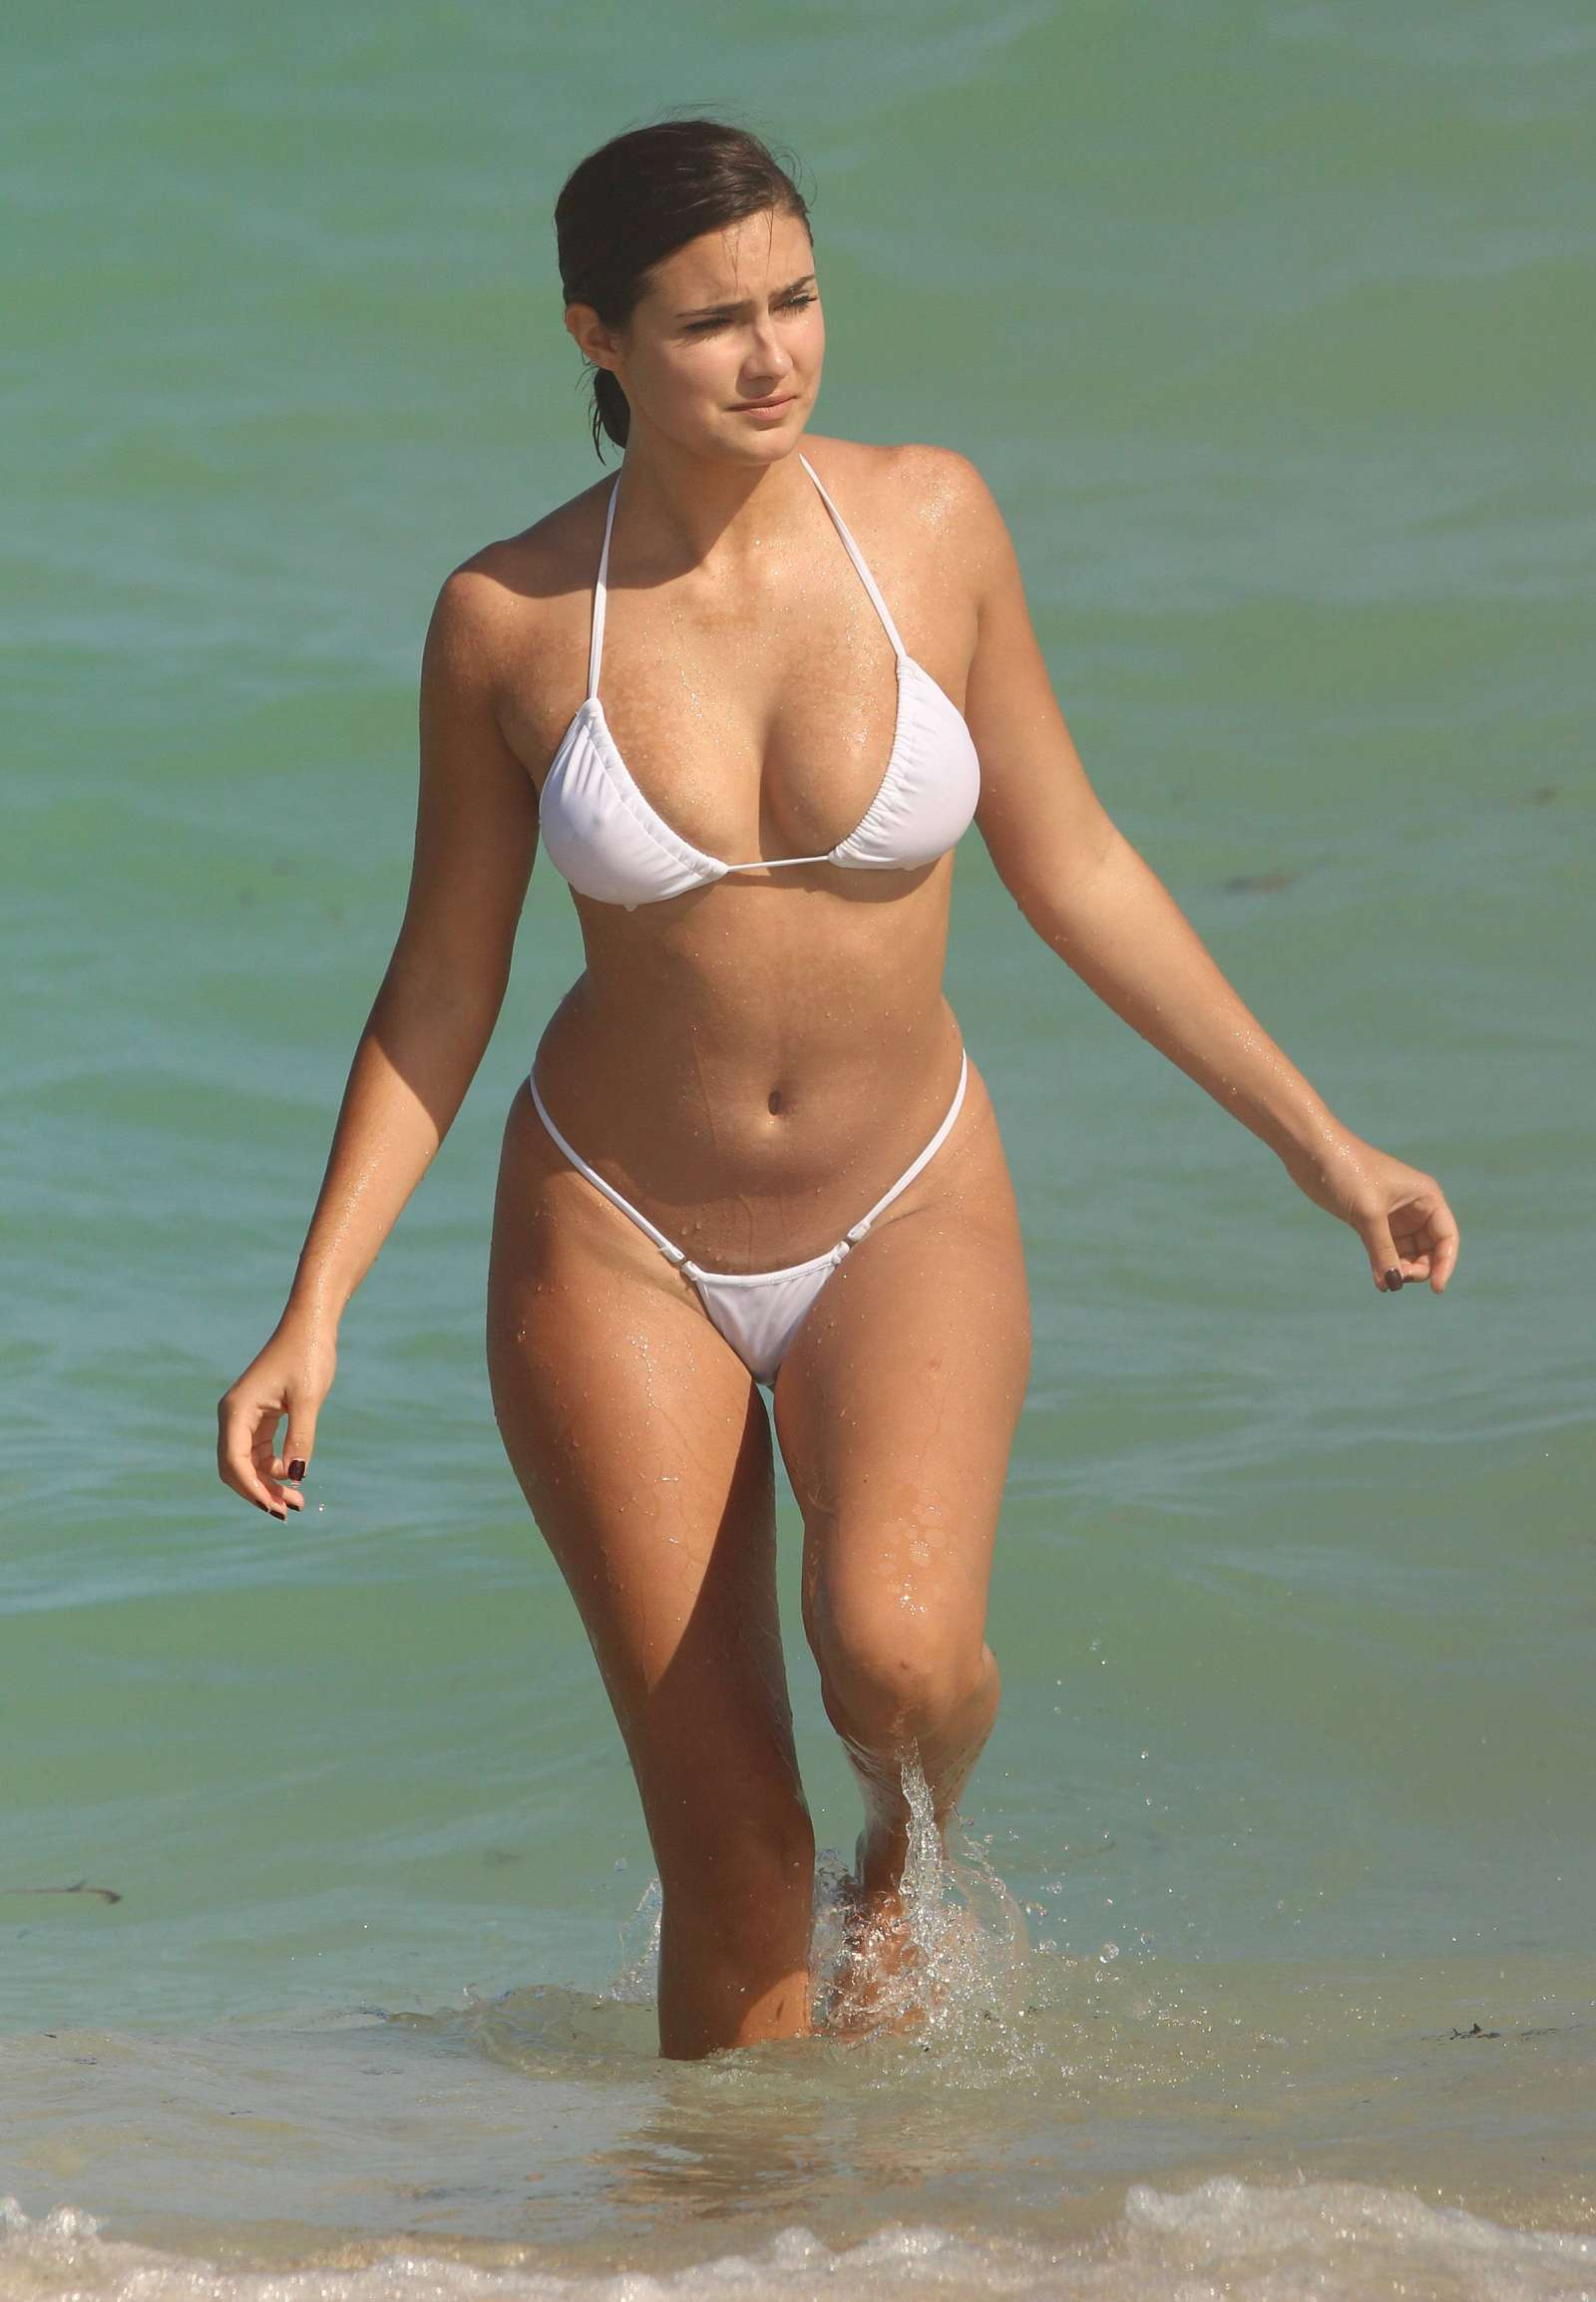 Tao Wickrath in a White Bikini on Miami Beach 2